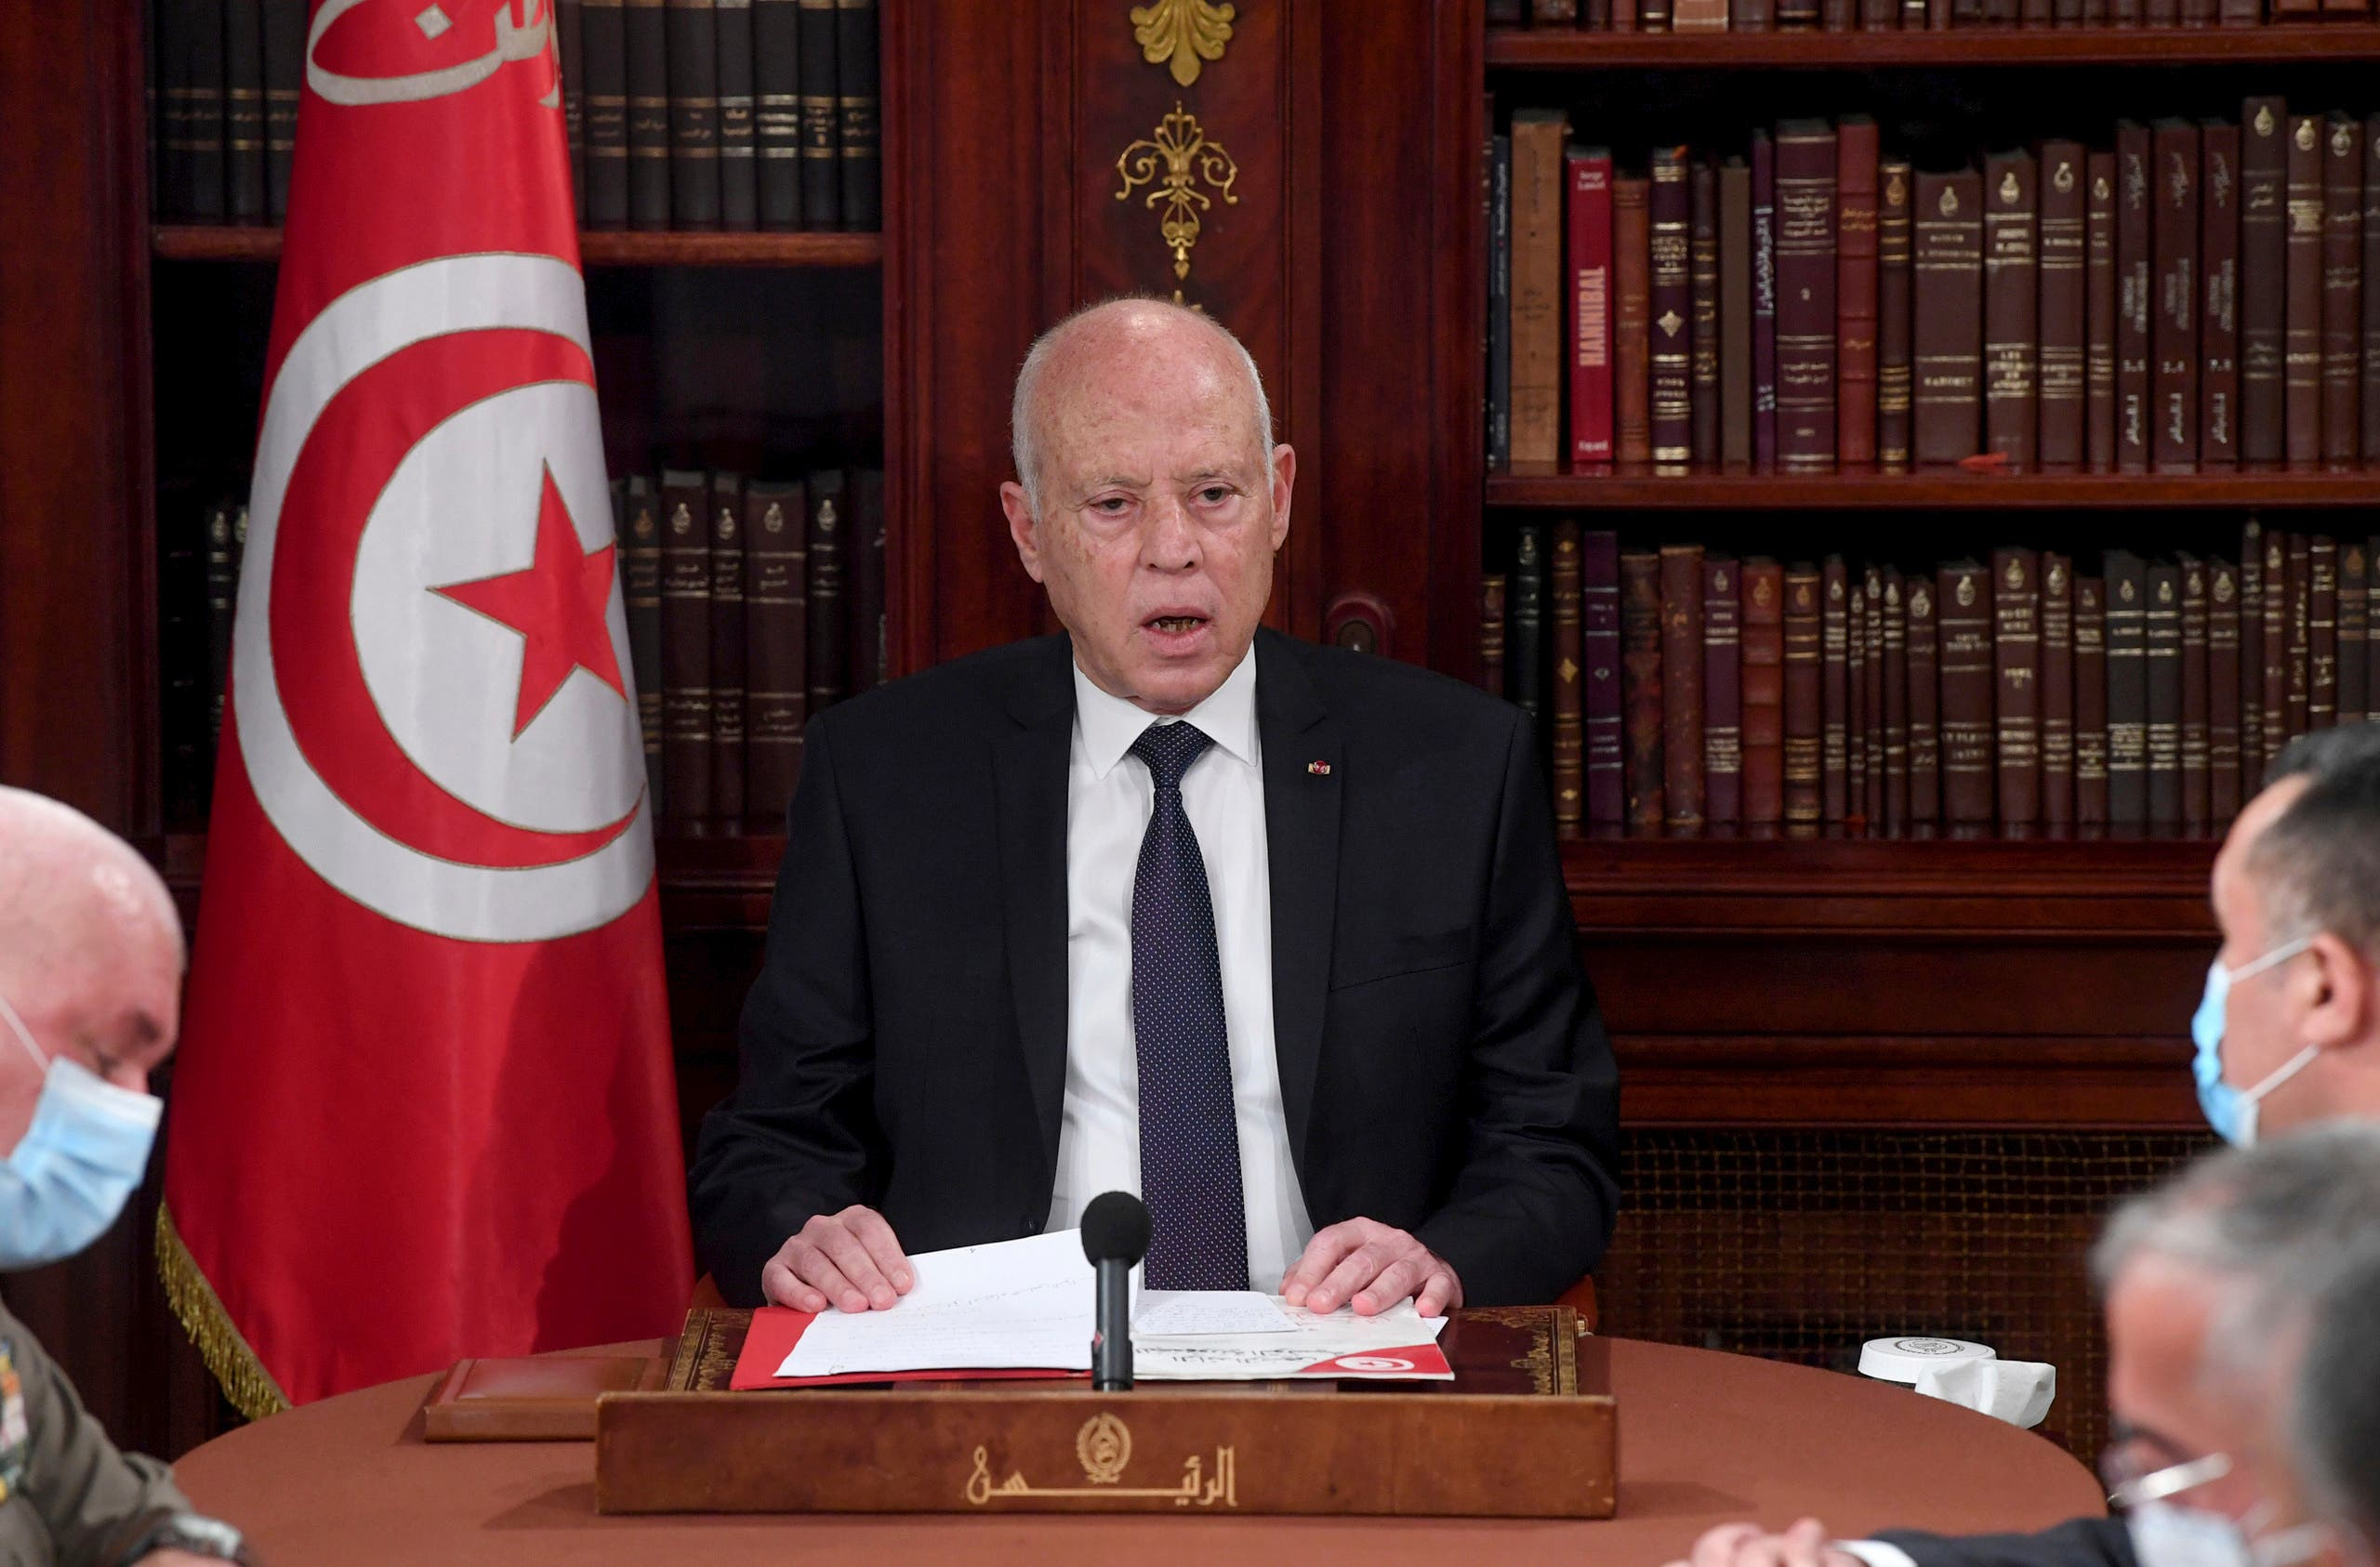 Tunisia's President Kais Saied, center, leads a security meeting with members of the army and police forces in Tunis, Tunisia, Sunday, July 25, 2021. (AP)